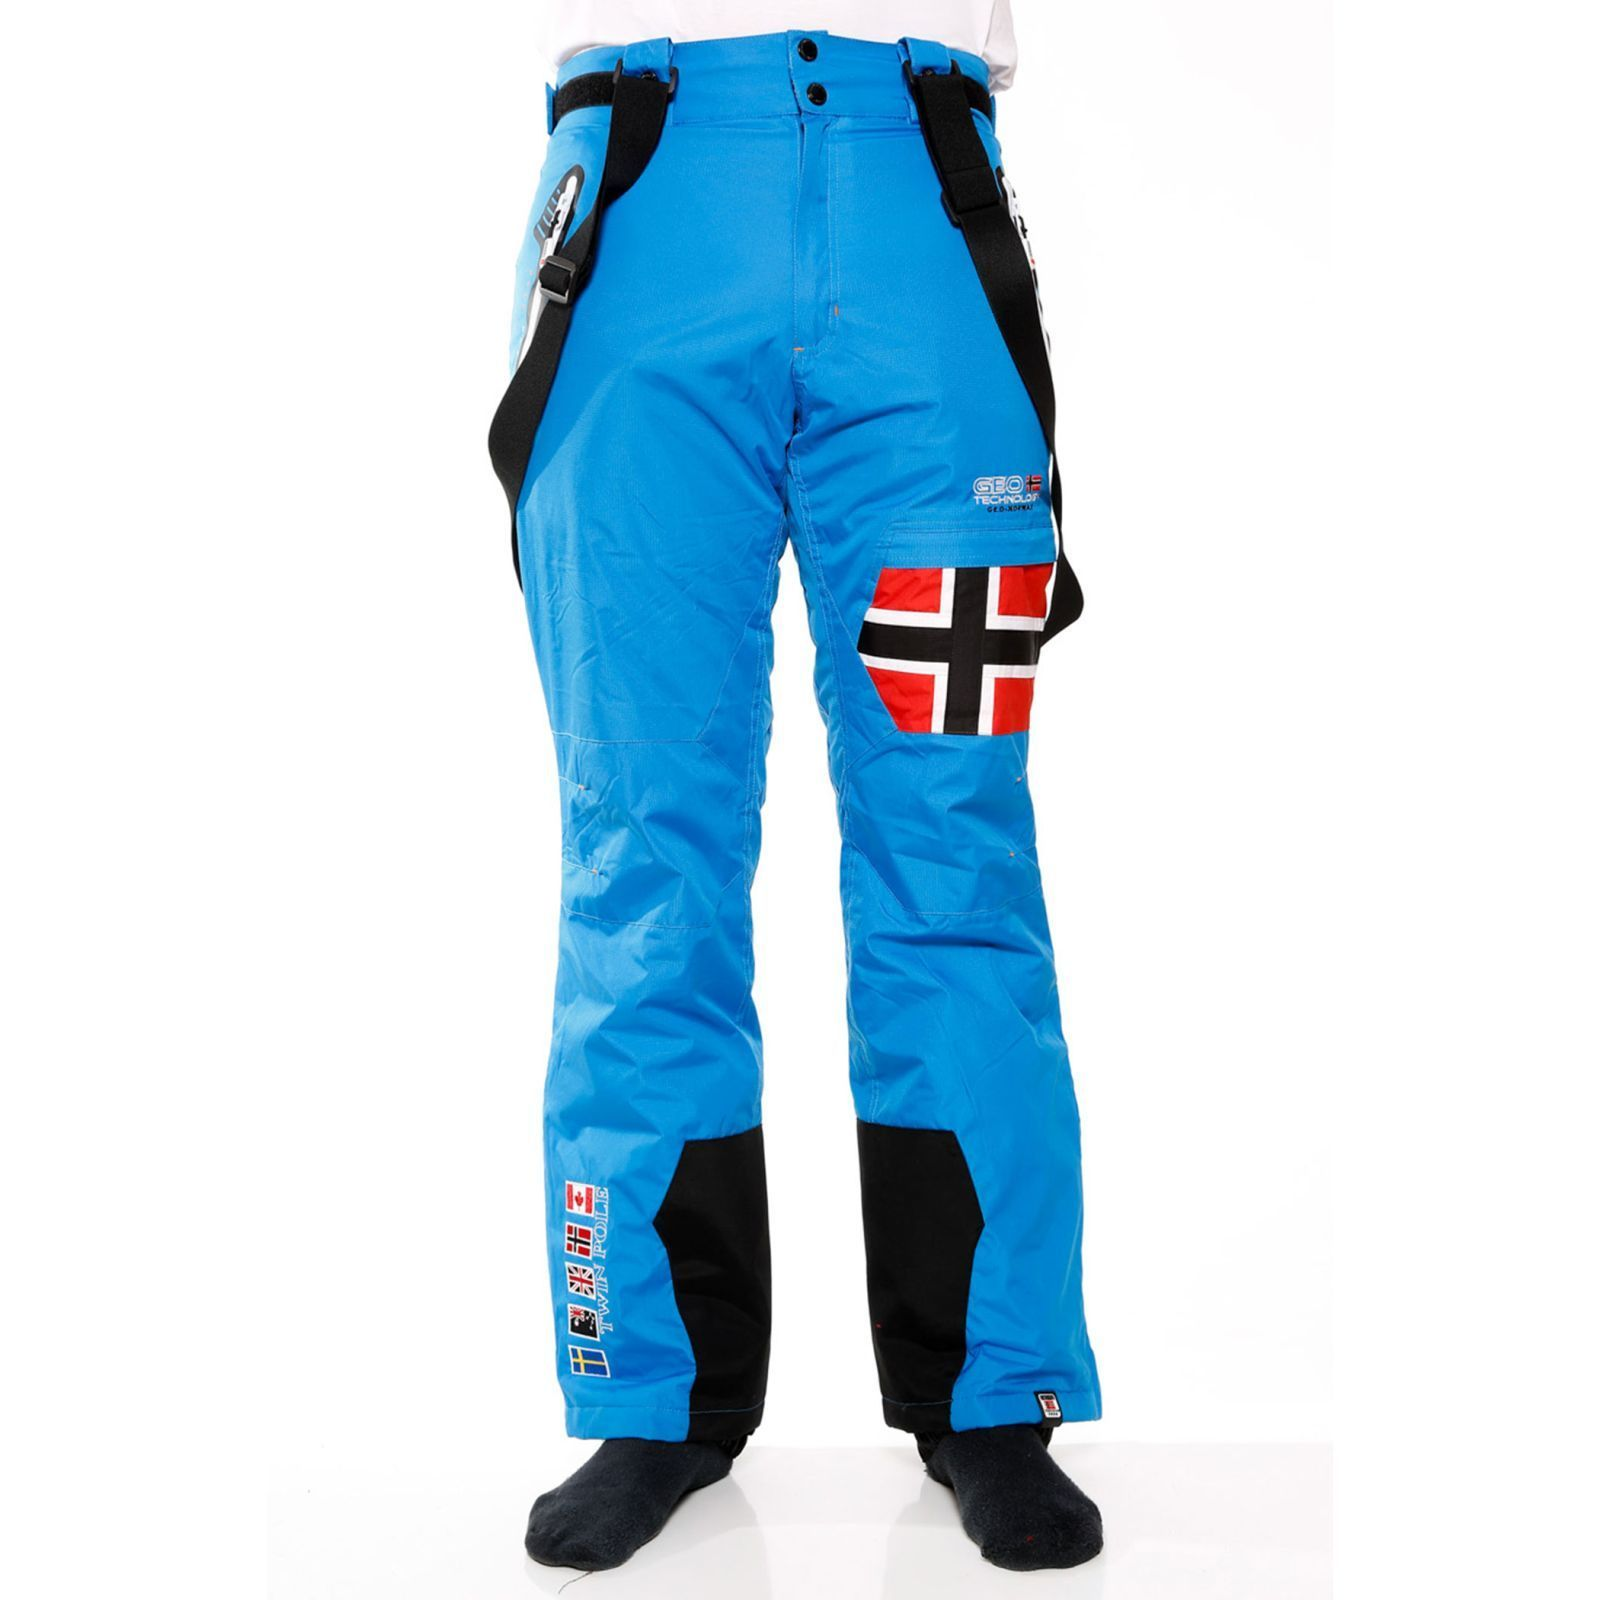 geographical norway walkman pantalon de ski bleu. Black Bedroom Furniture Sets. Home Design Ideas